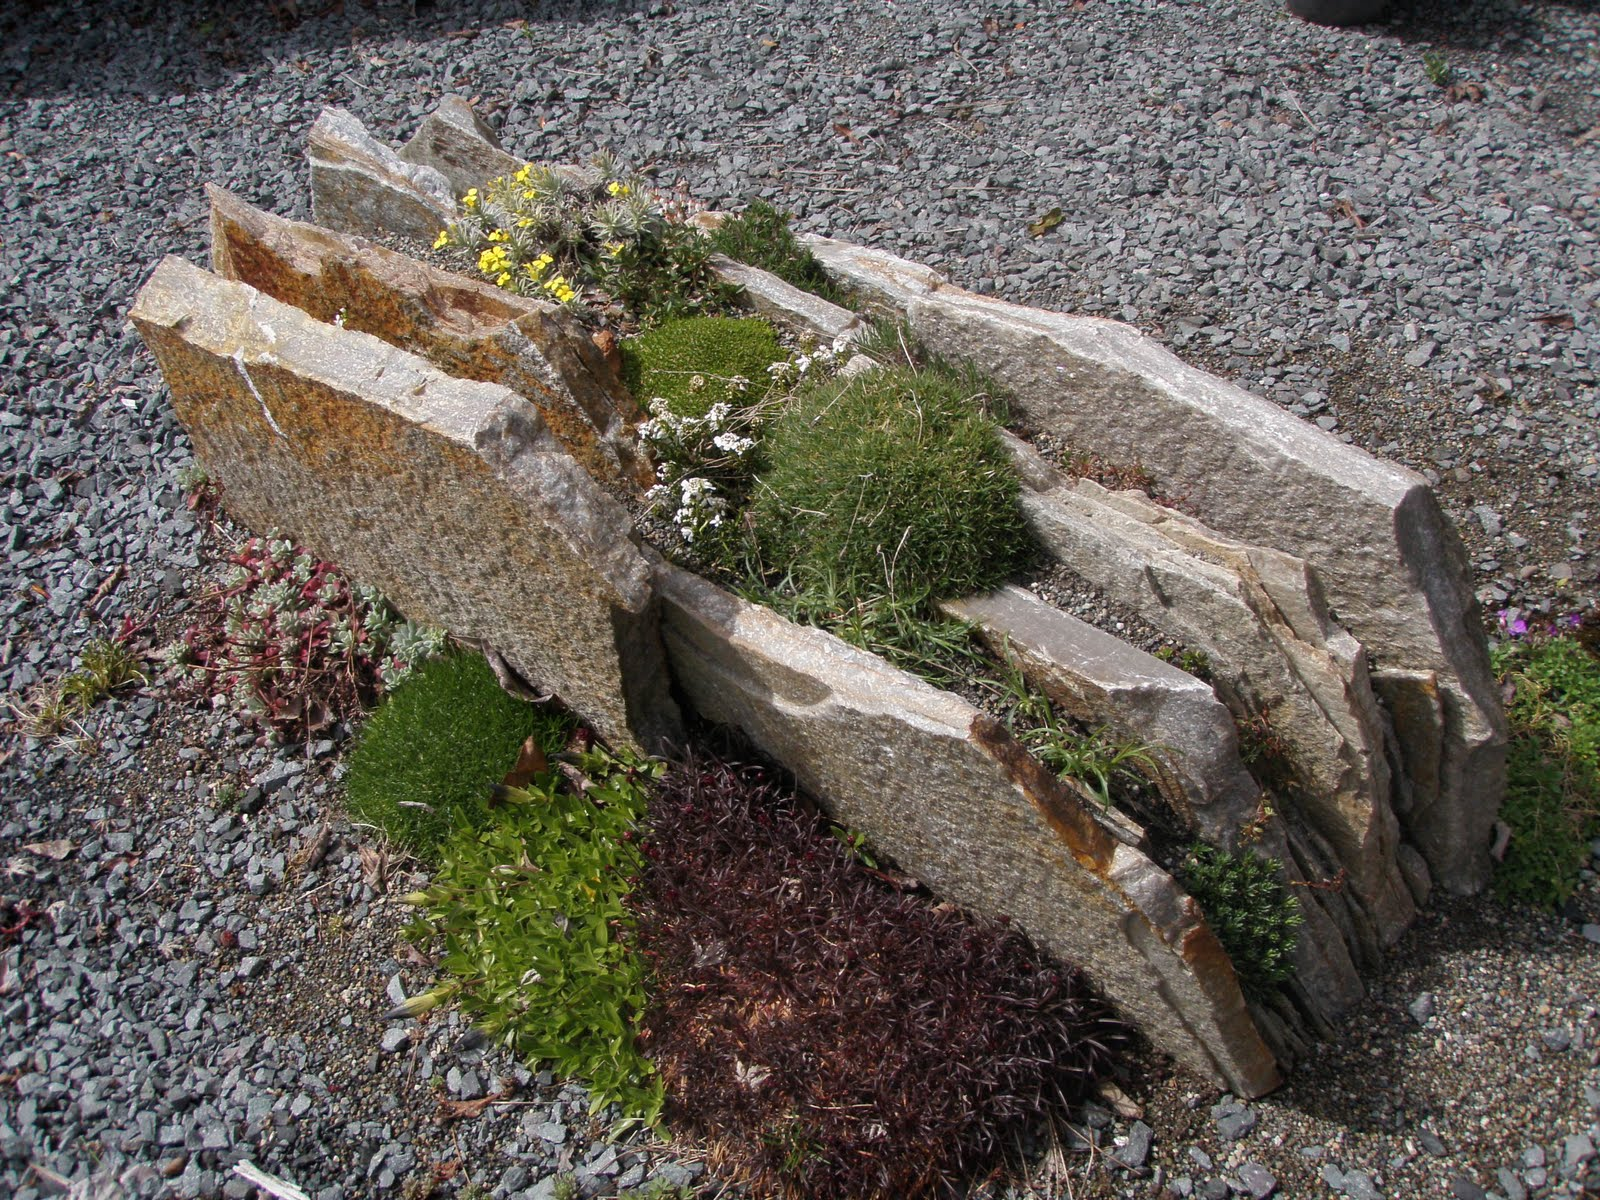 Landscaping Rocks Names : Garden rocks with names http kentonjseth spot